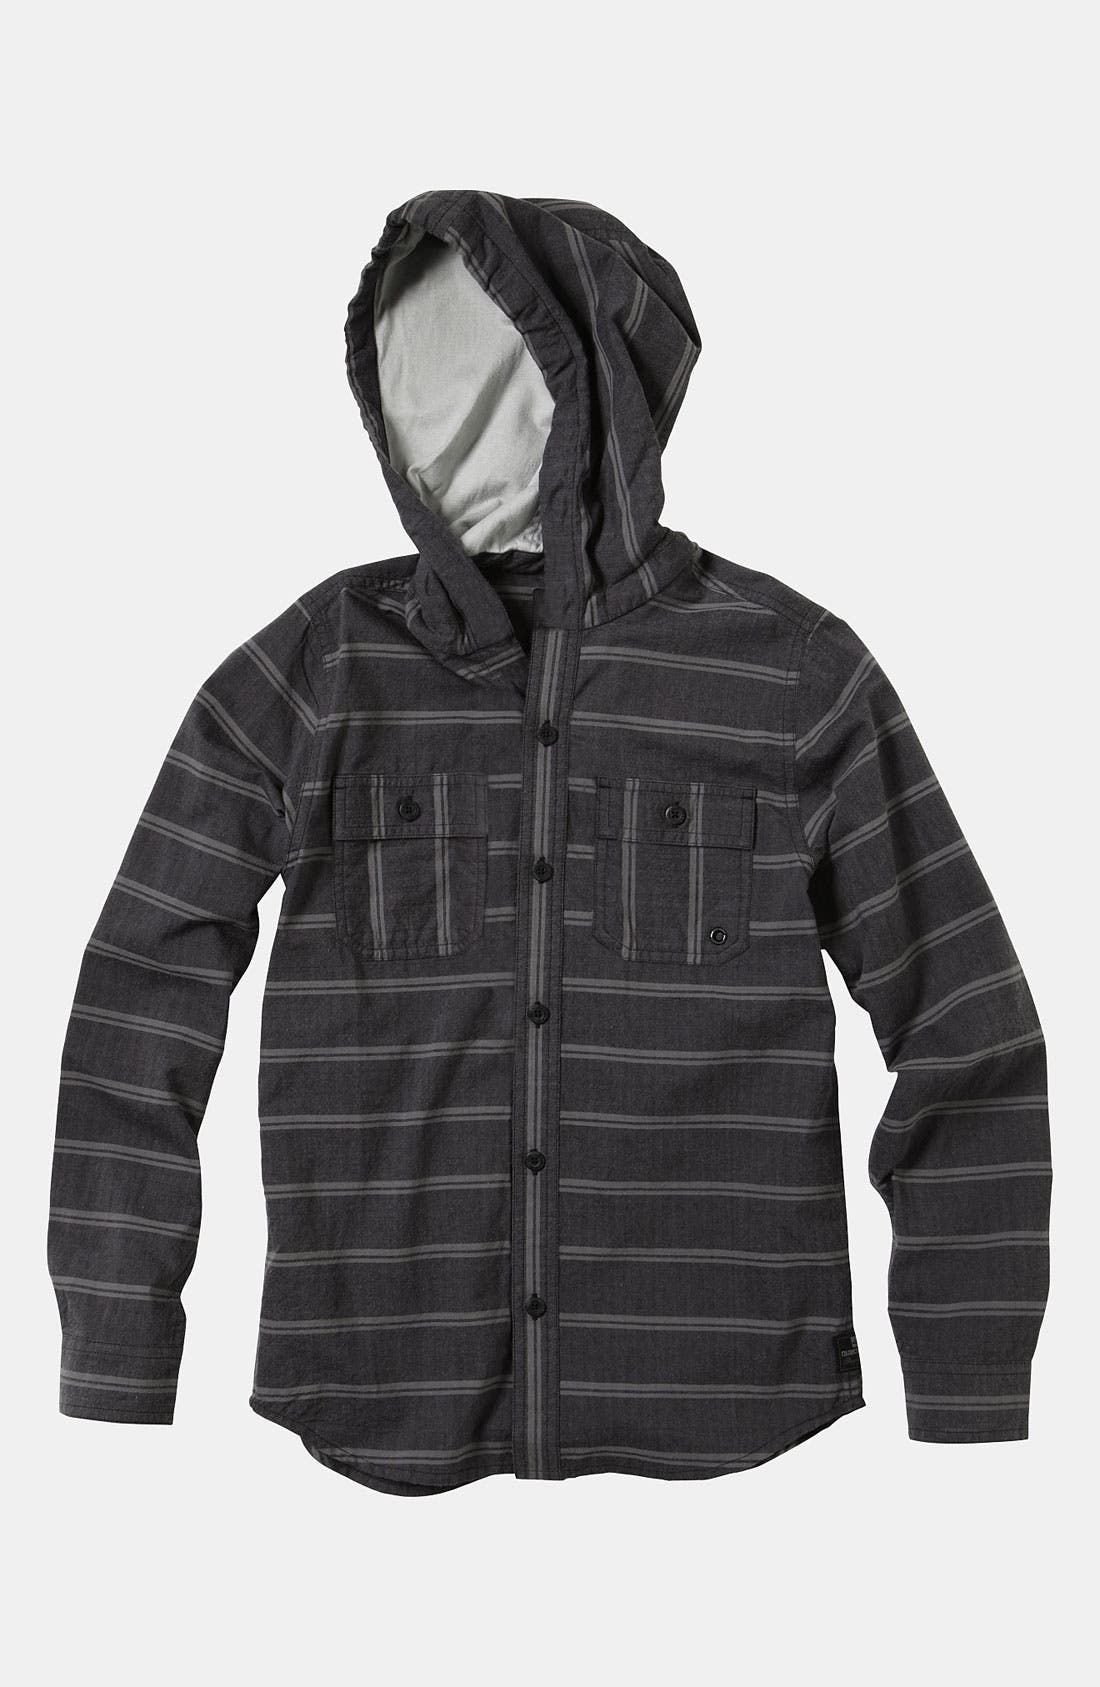 Alternate Image 1 Selected - Quiksilver 'Lunch Stoke' Hooded Shirt (Big Boys)